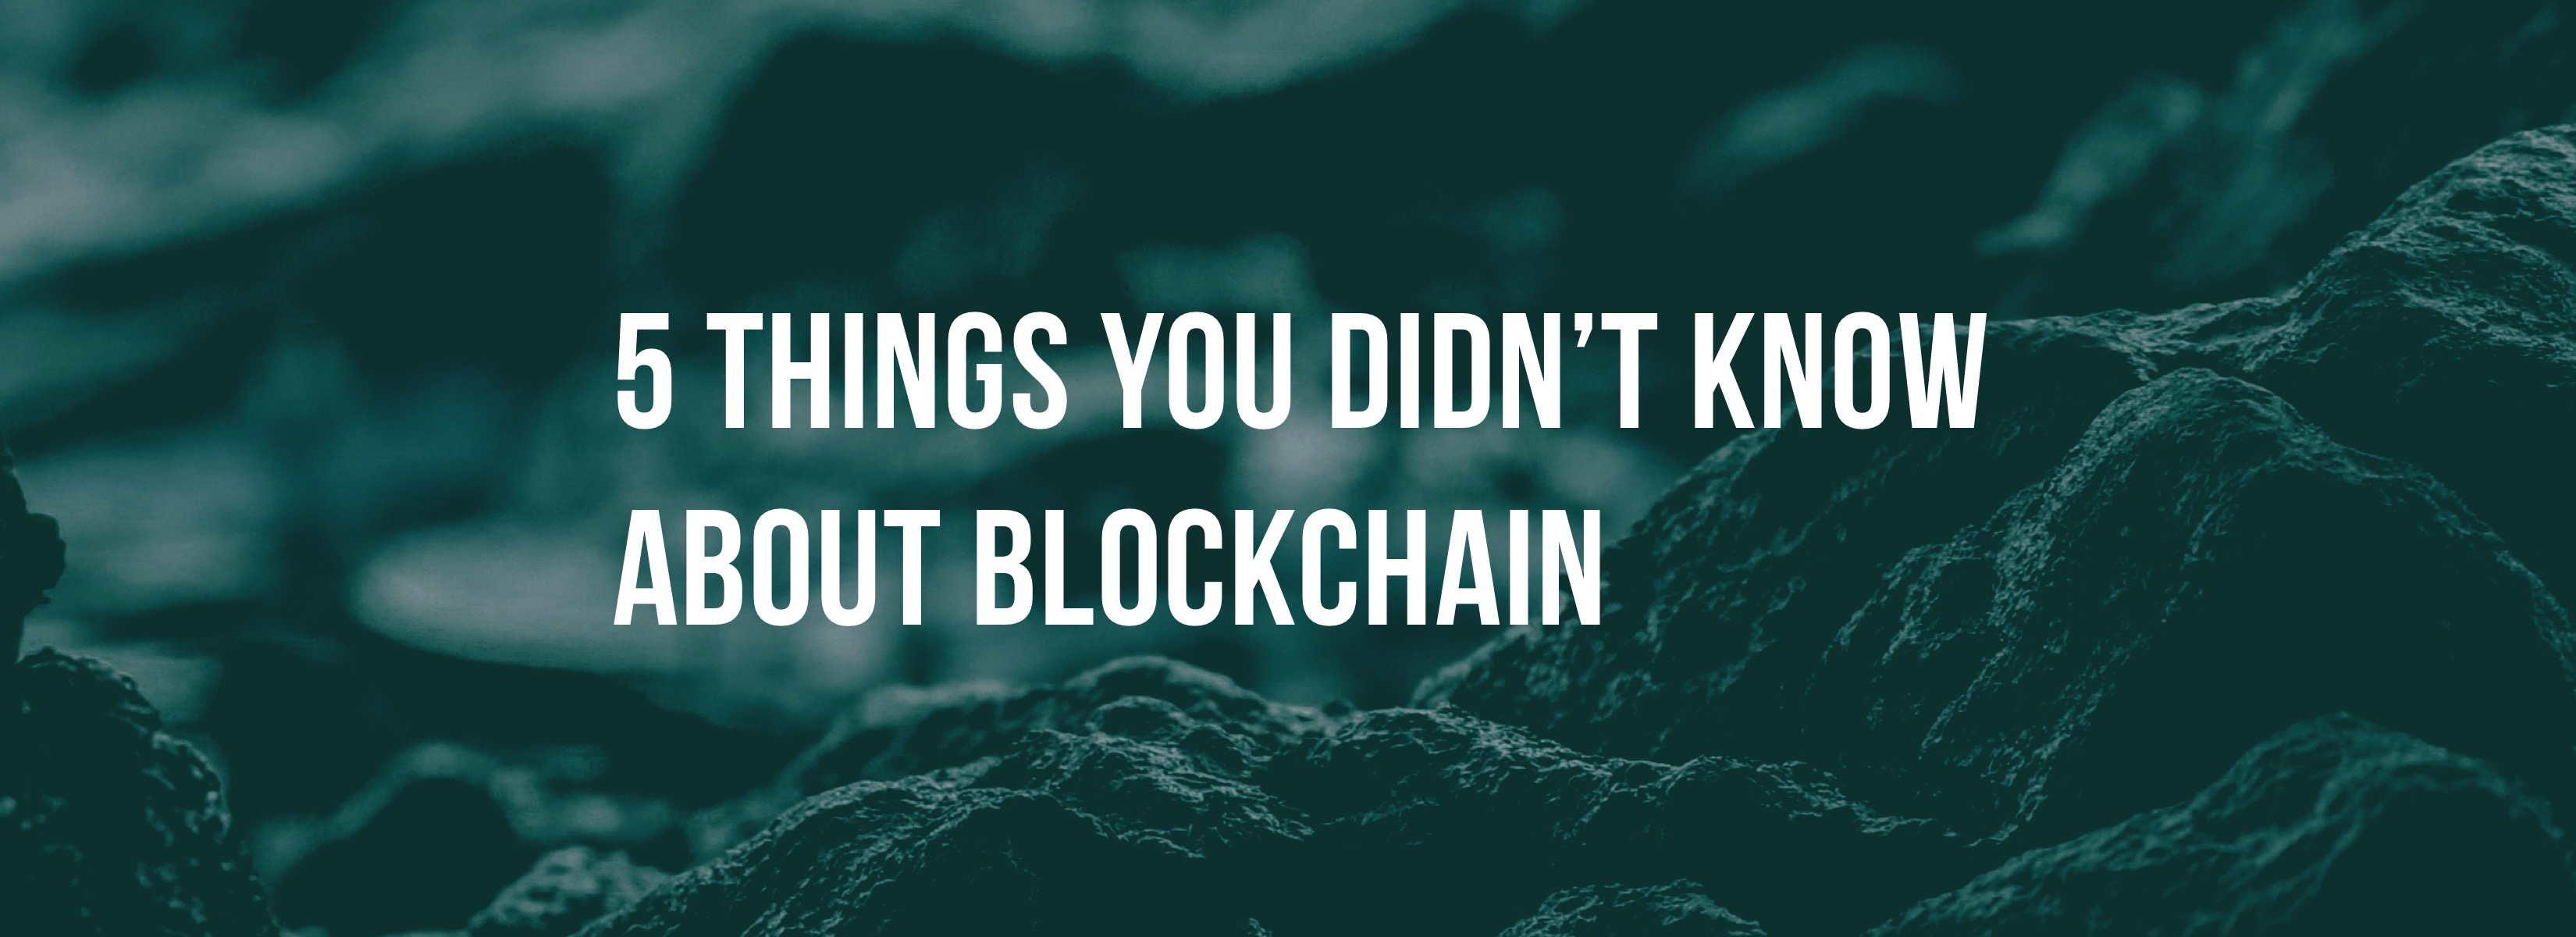 5 things you didn't know about blockchain